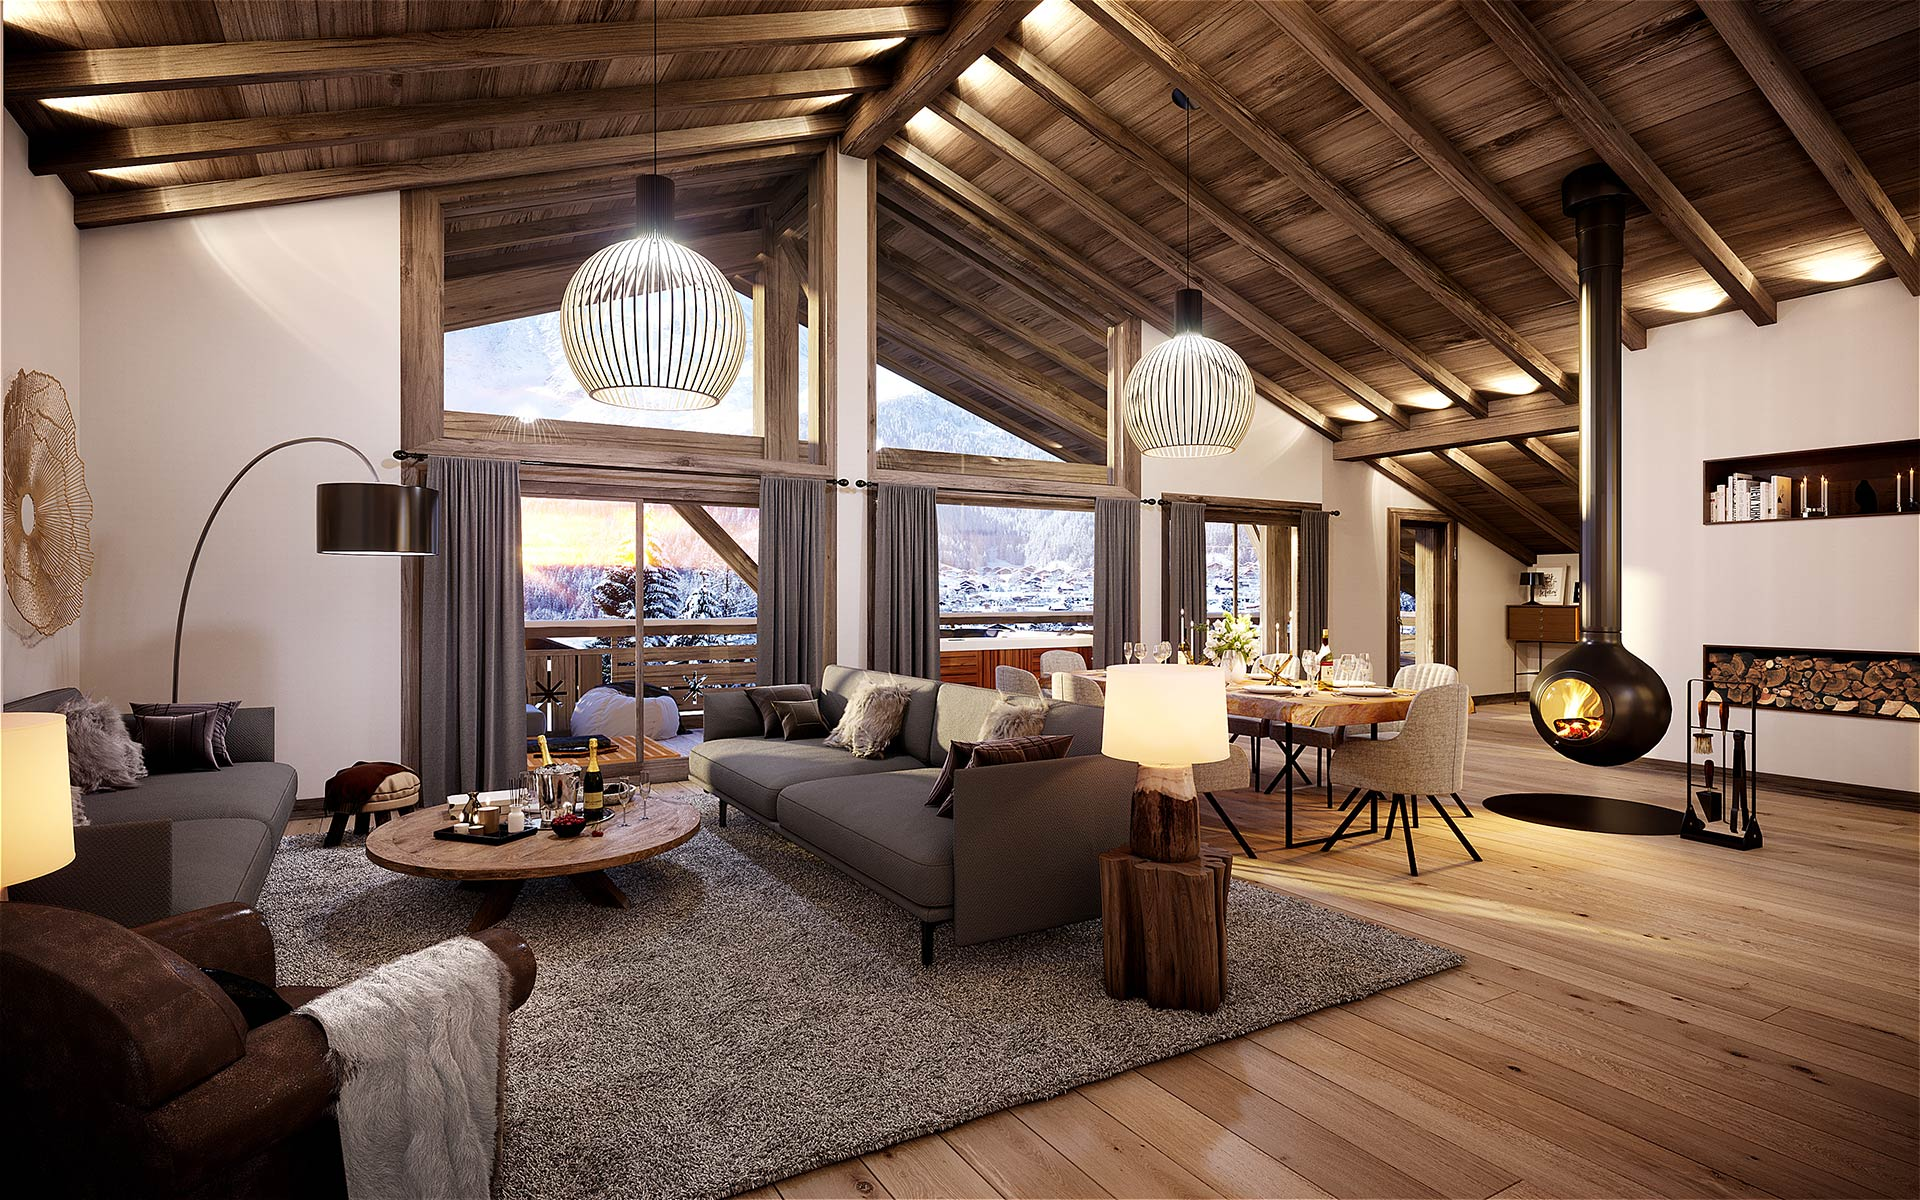 3D perspective of a luxury chalet interior